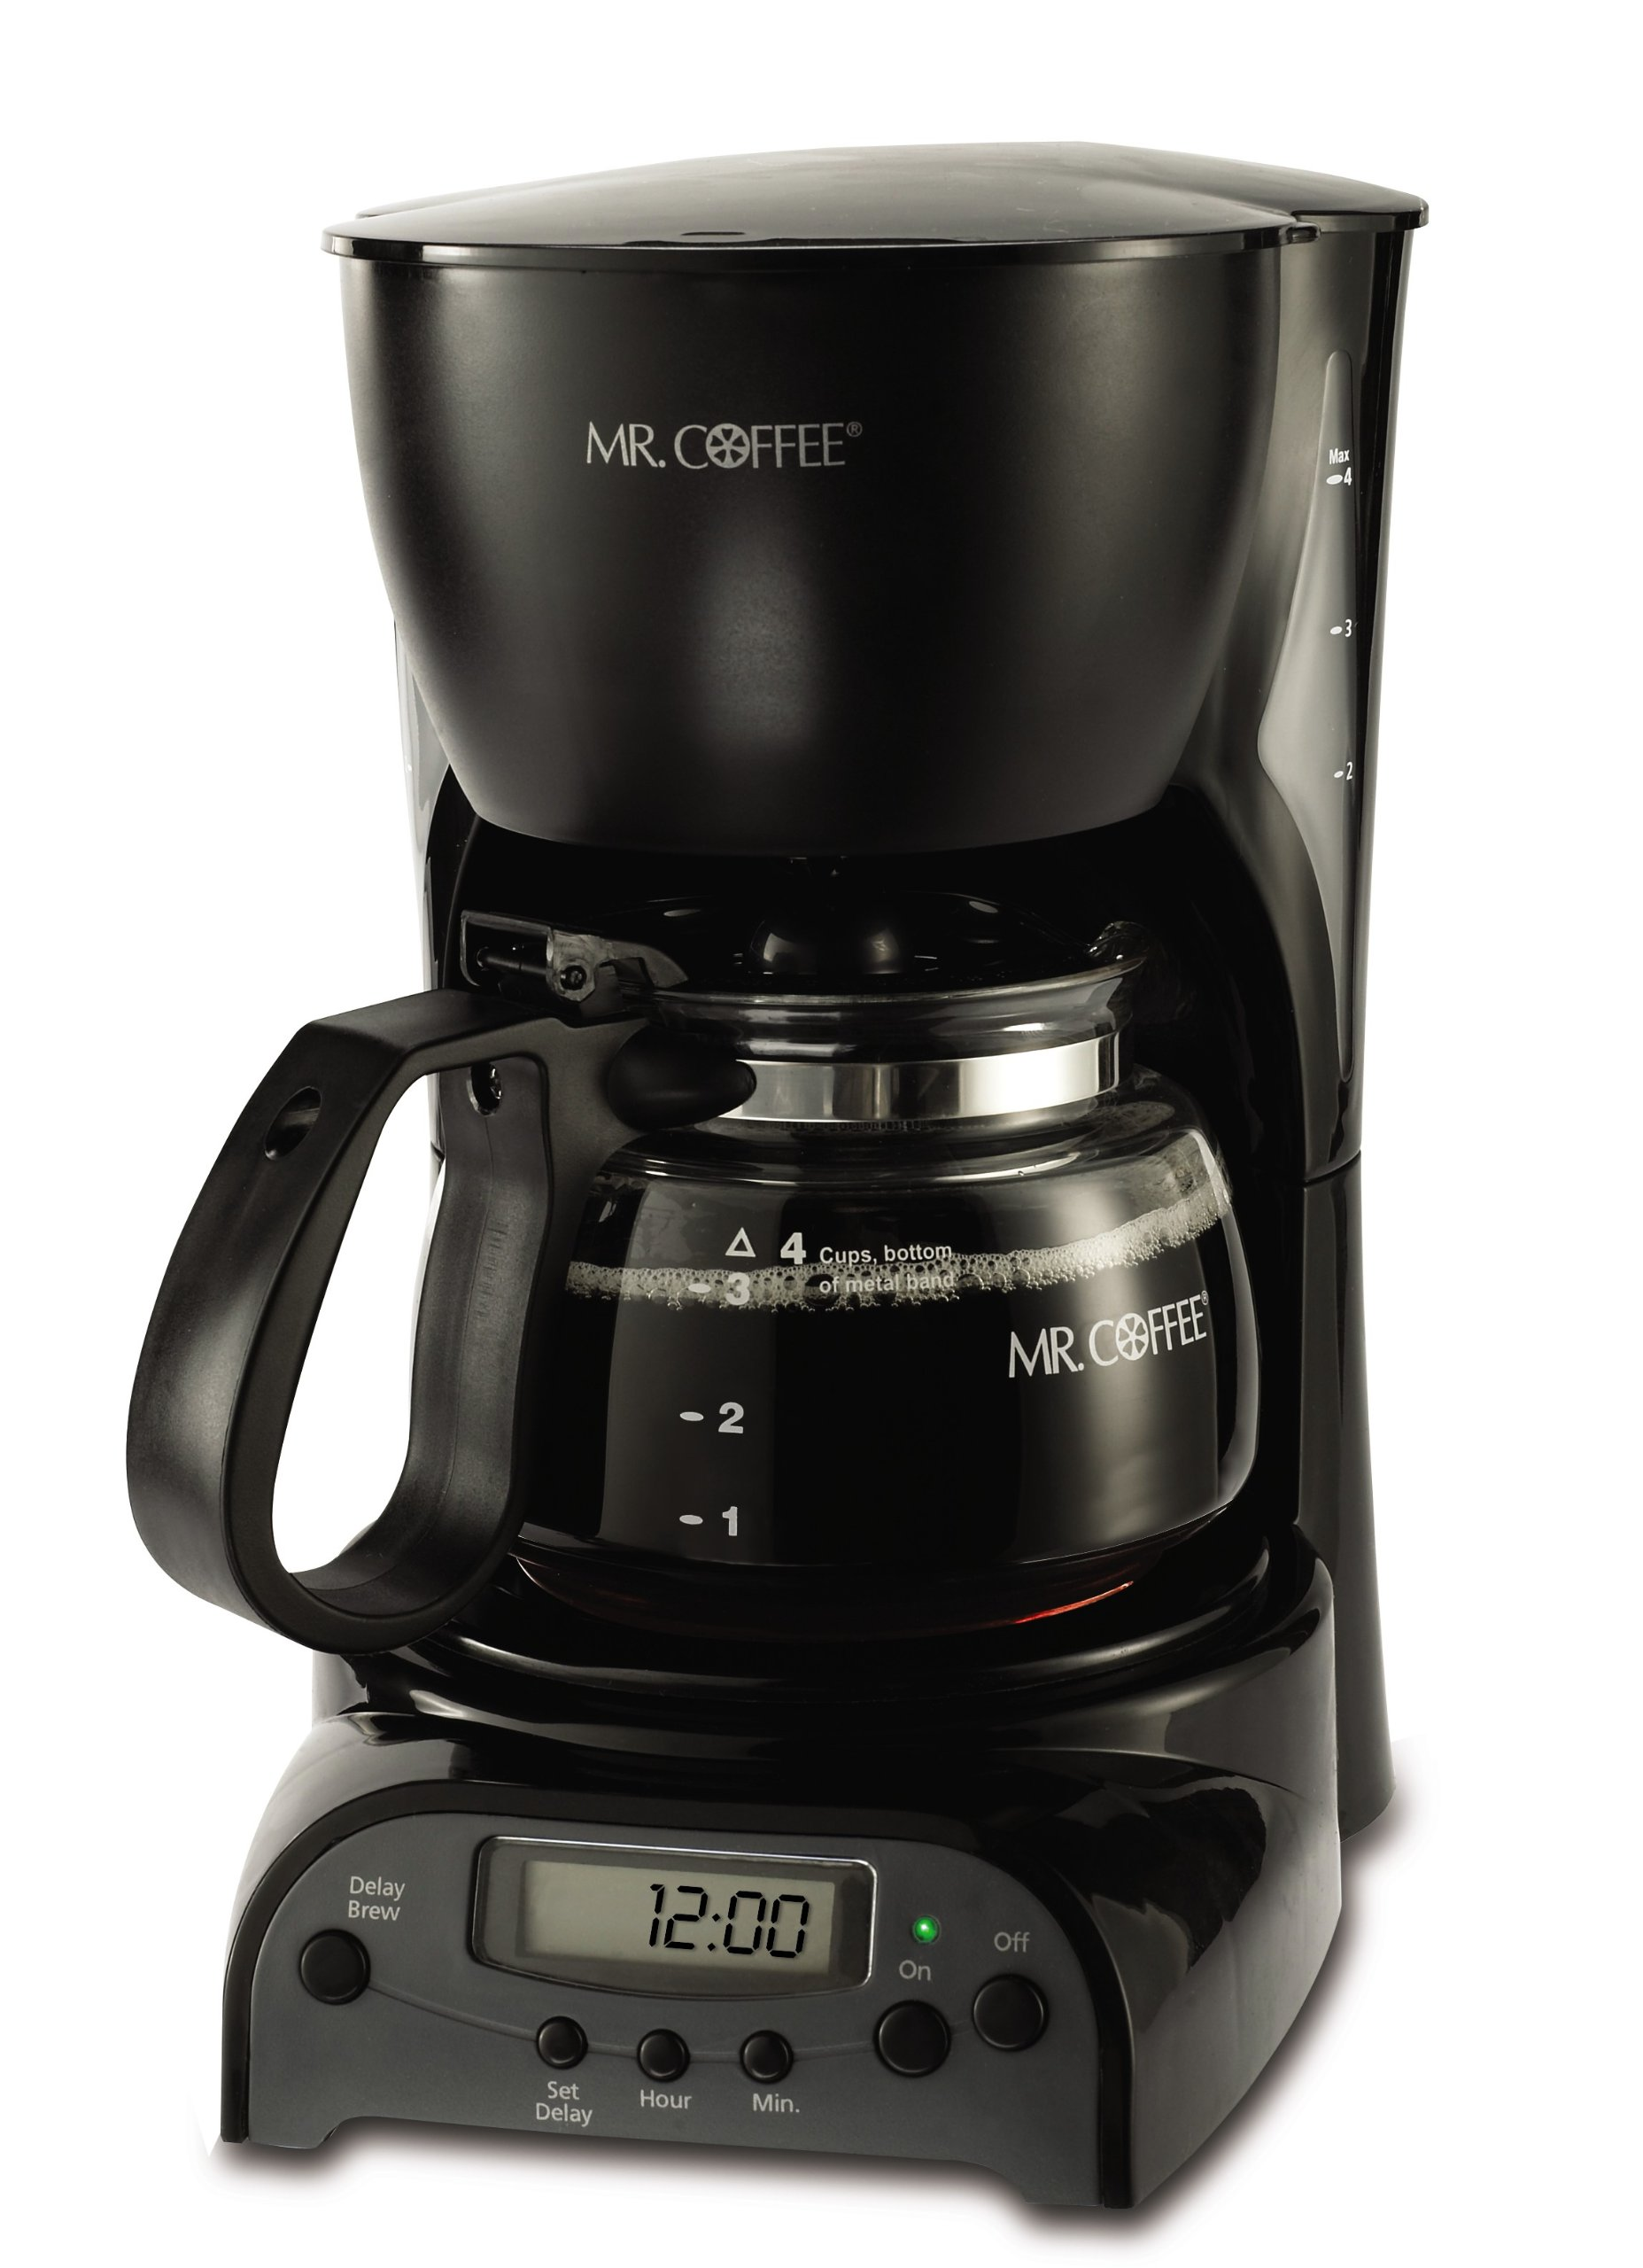 Best Programmable Coffee Maker 2016 : 10 Best Drip Coffee Maker in 2016 - All Best Top 10